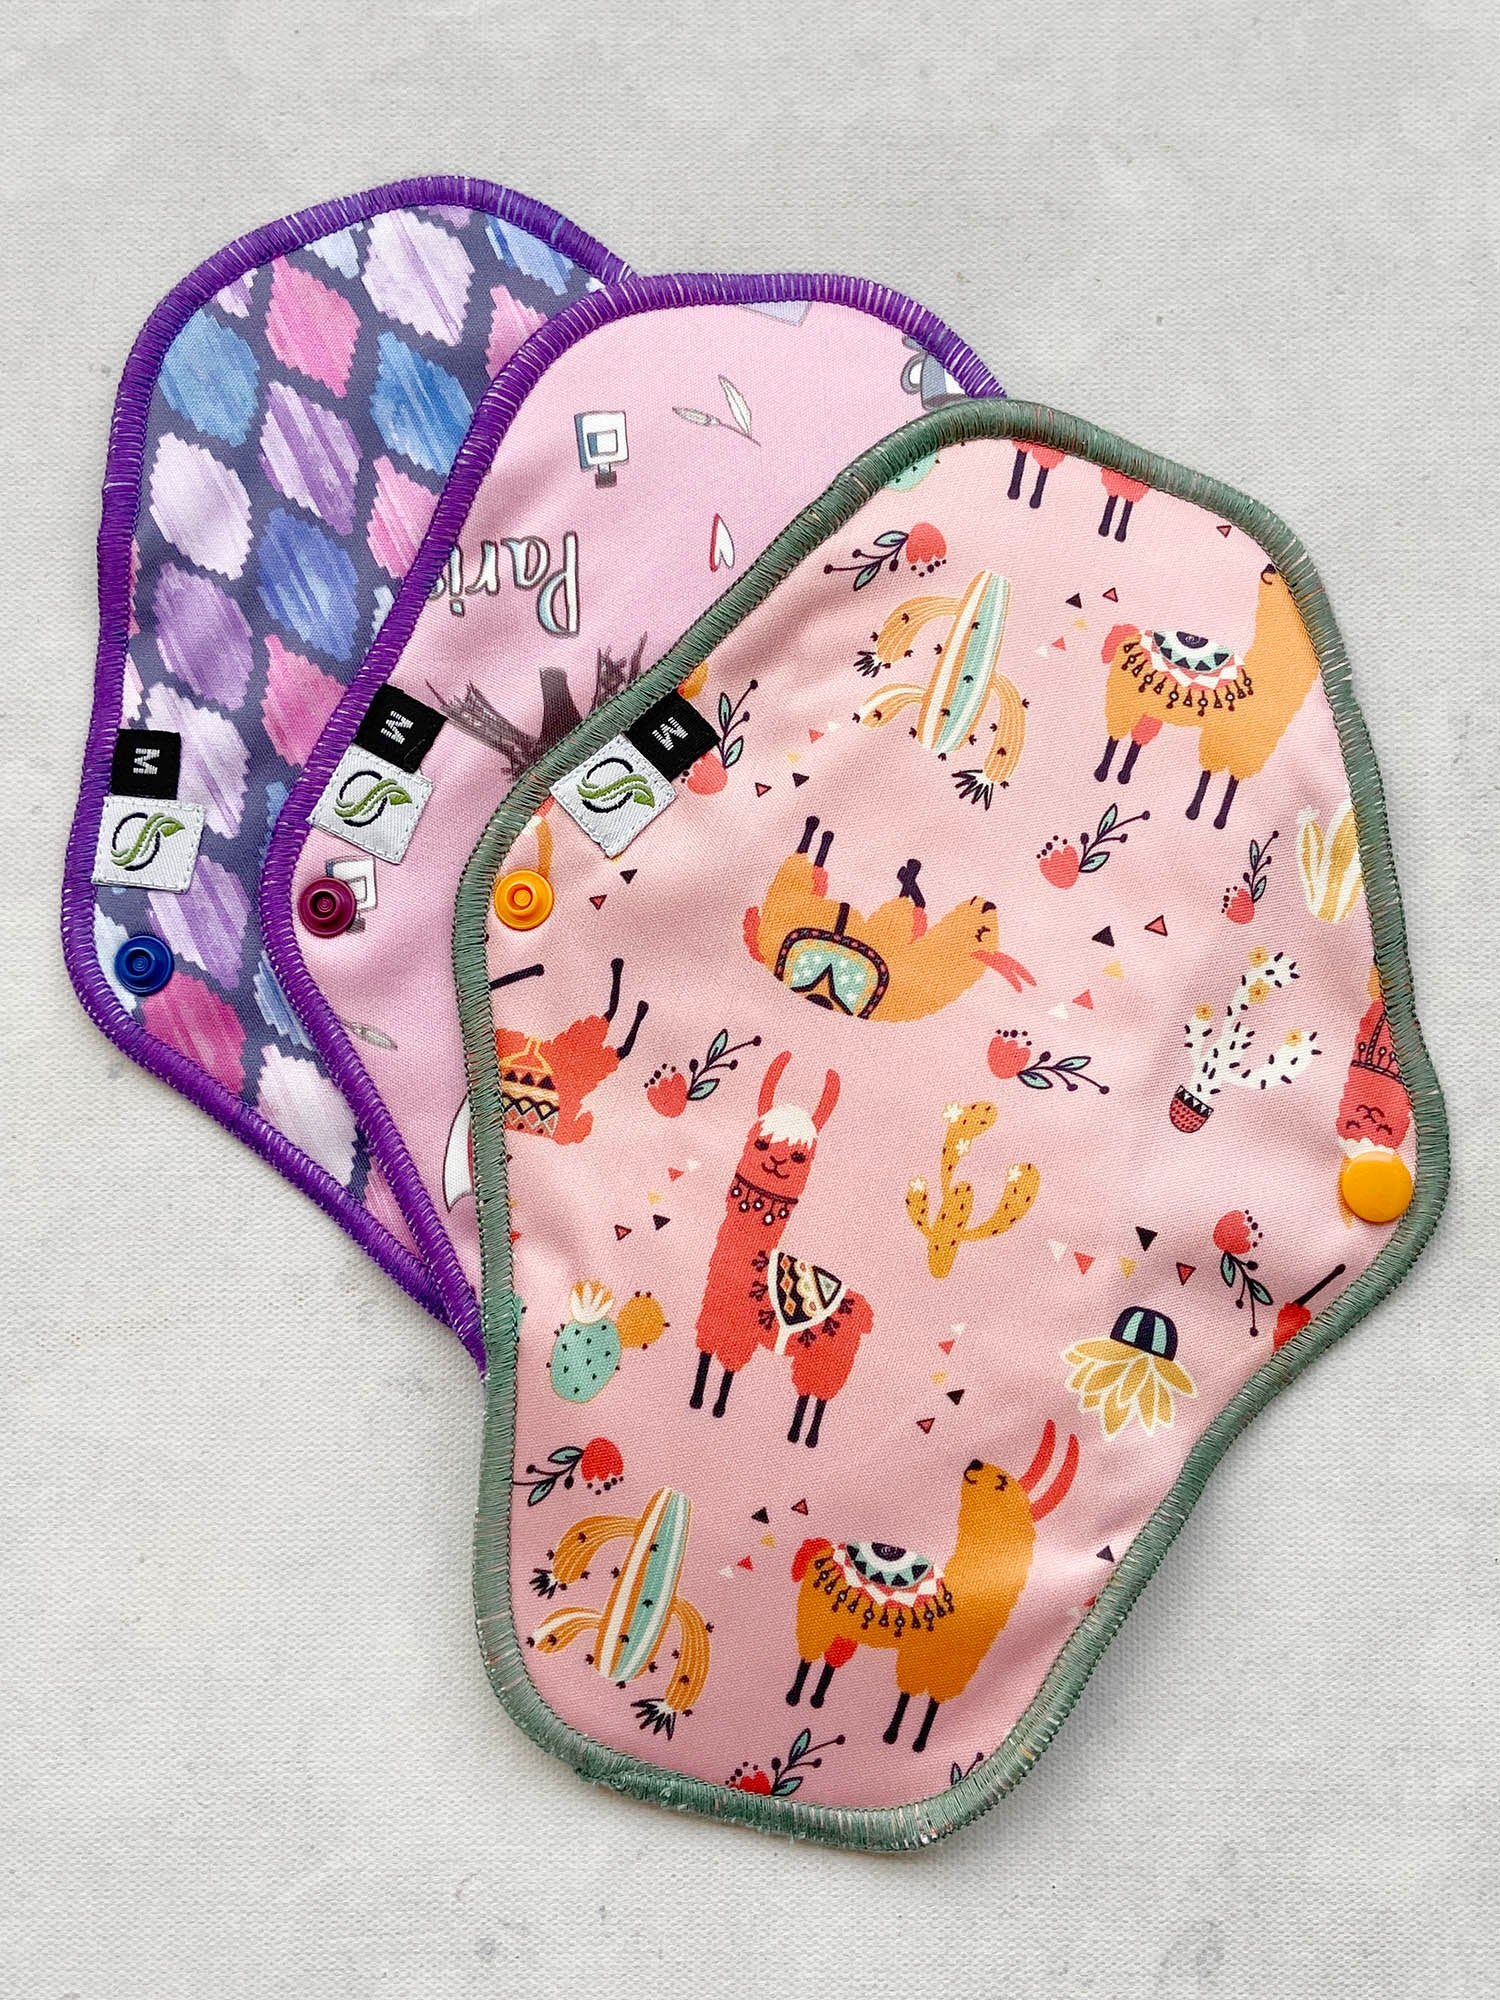 Cloth Sanitary Pads - Value Pack of 3